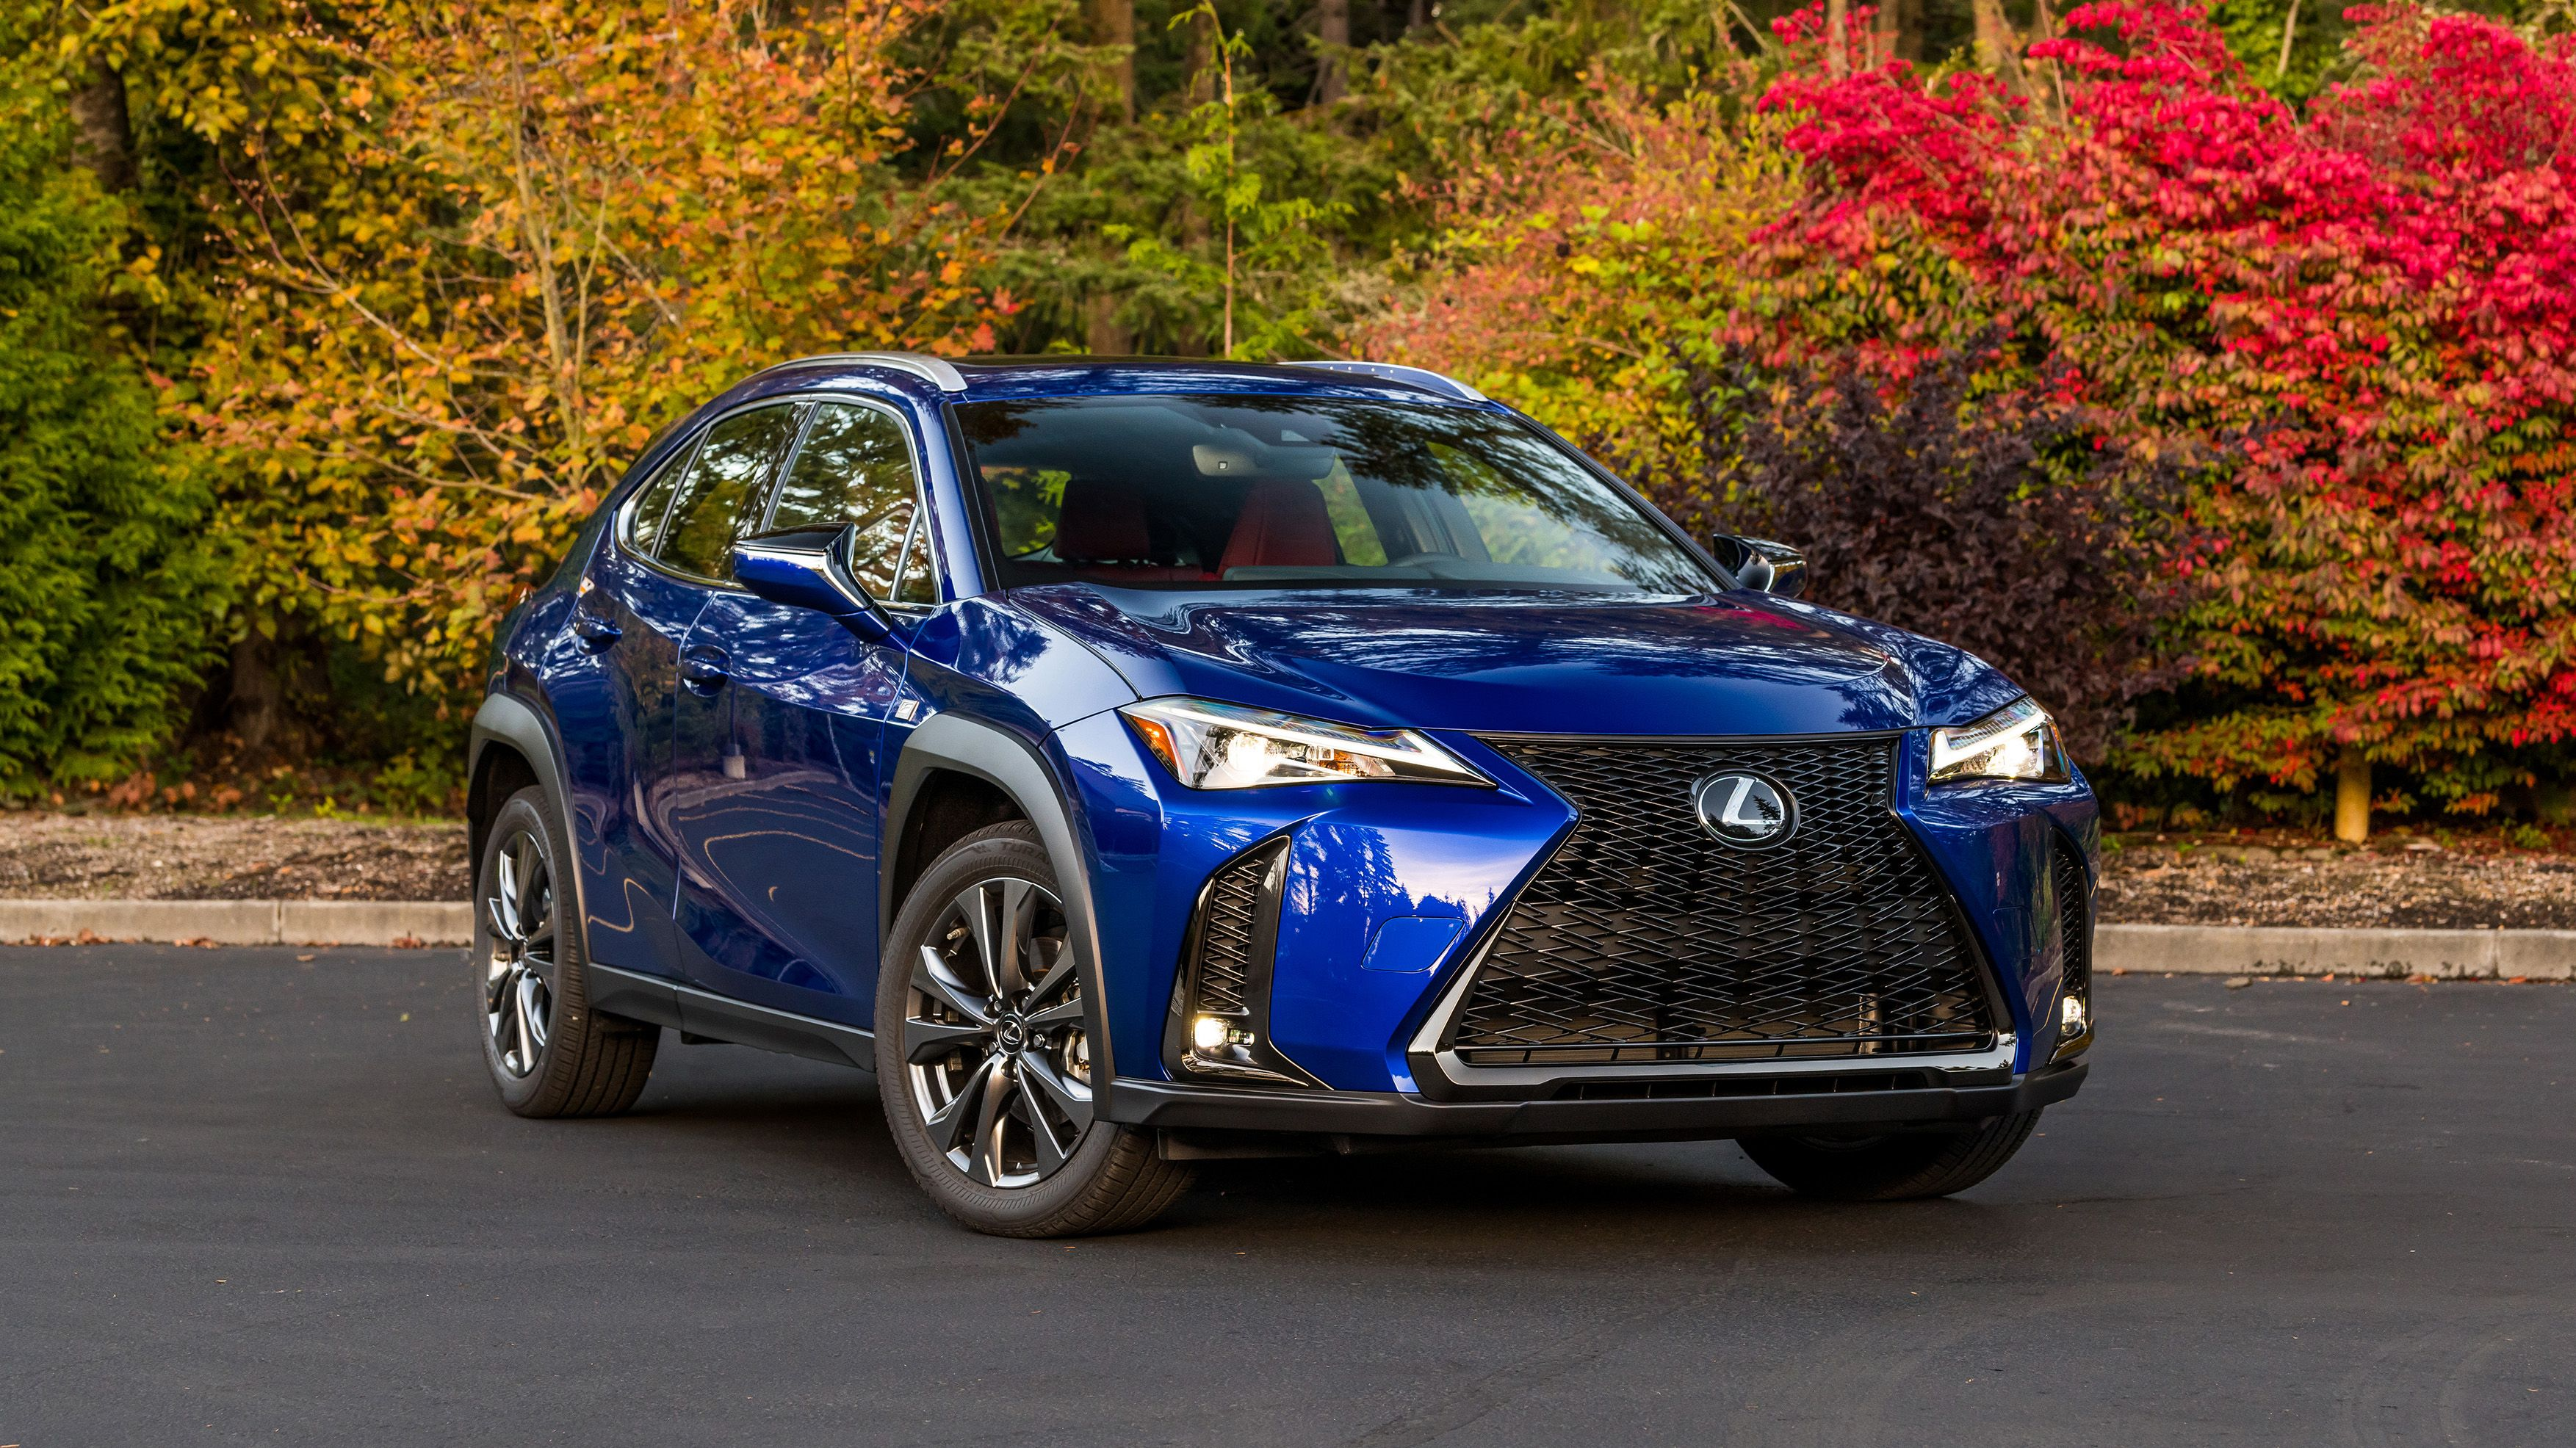 2020 Lexus Ux 200 F Sport Drivers Notes Interior Design Performance In 2020 Lexus Lexus Suv Lexus Cars